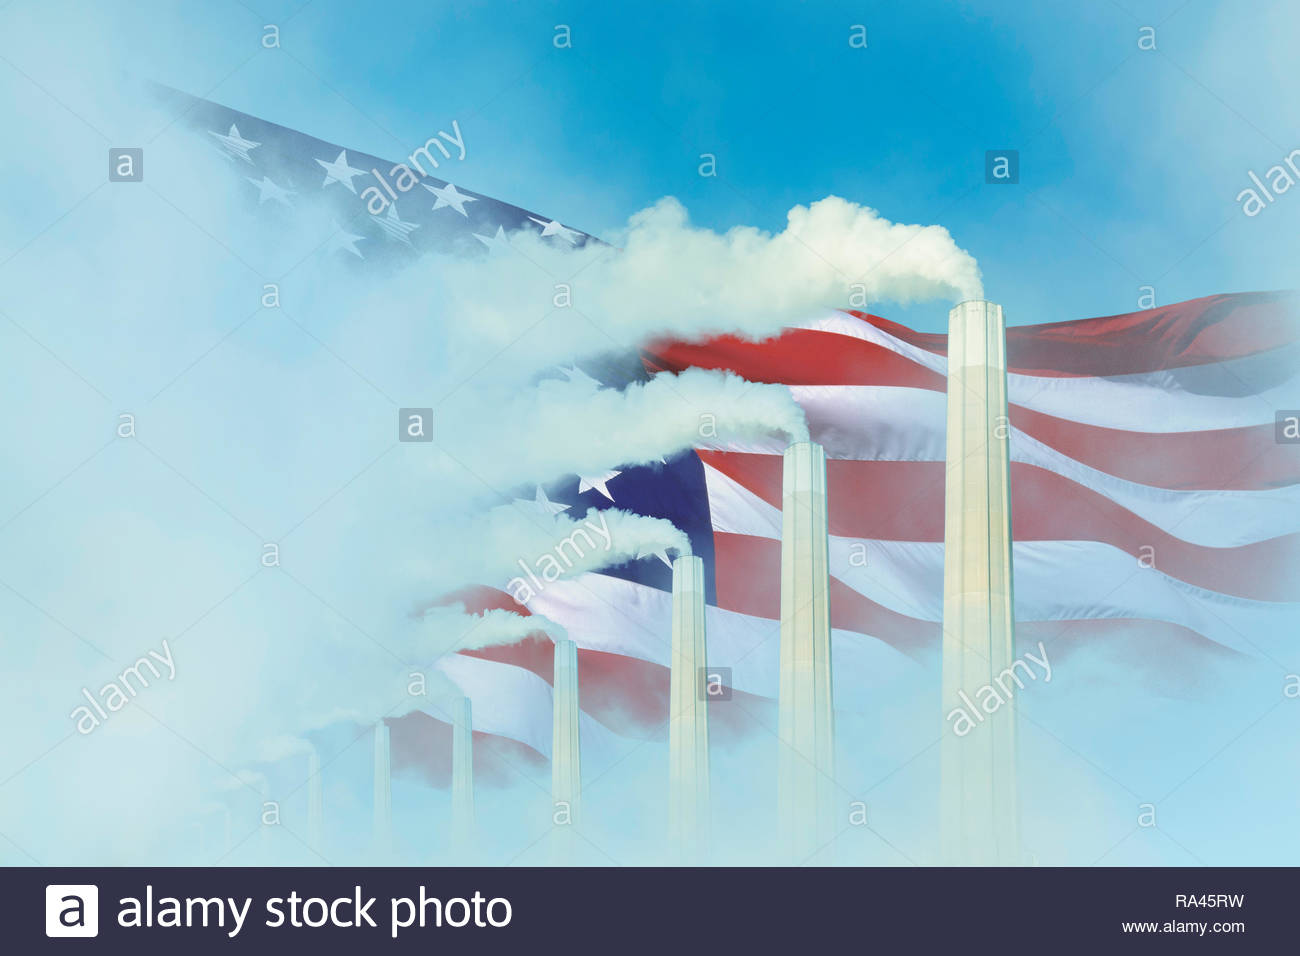 Global warming Climate change US flag smoke greenhouse gas chimney.Stock Photo